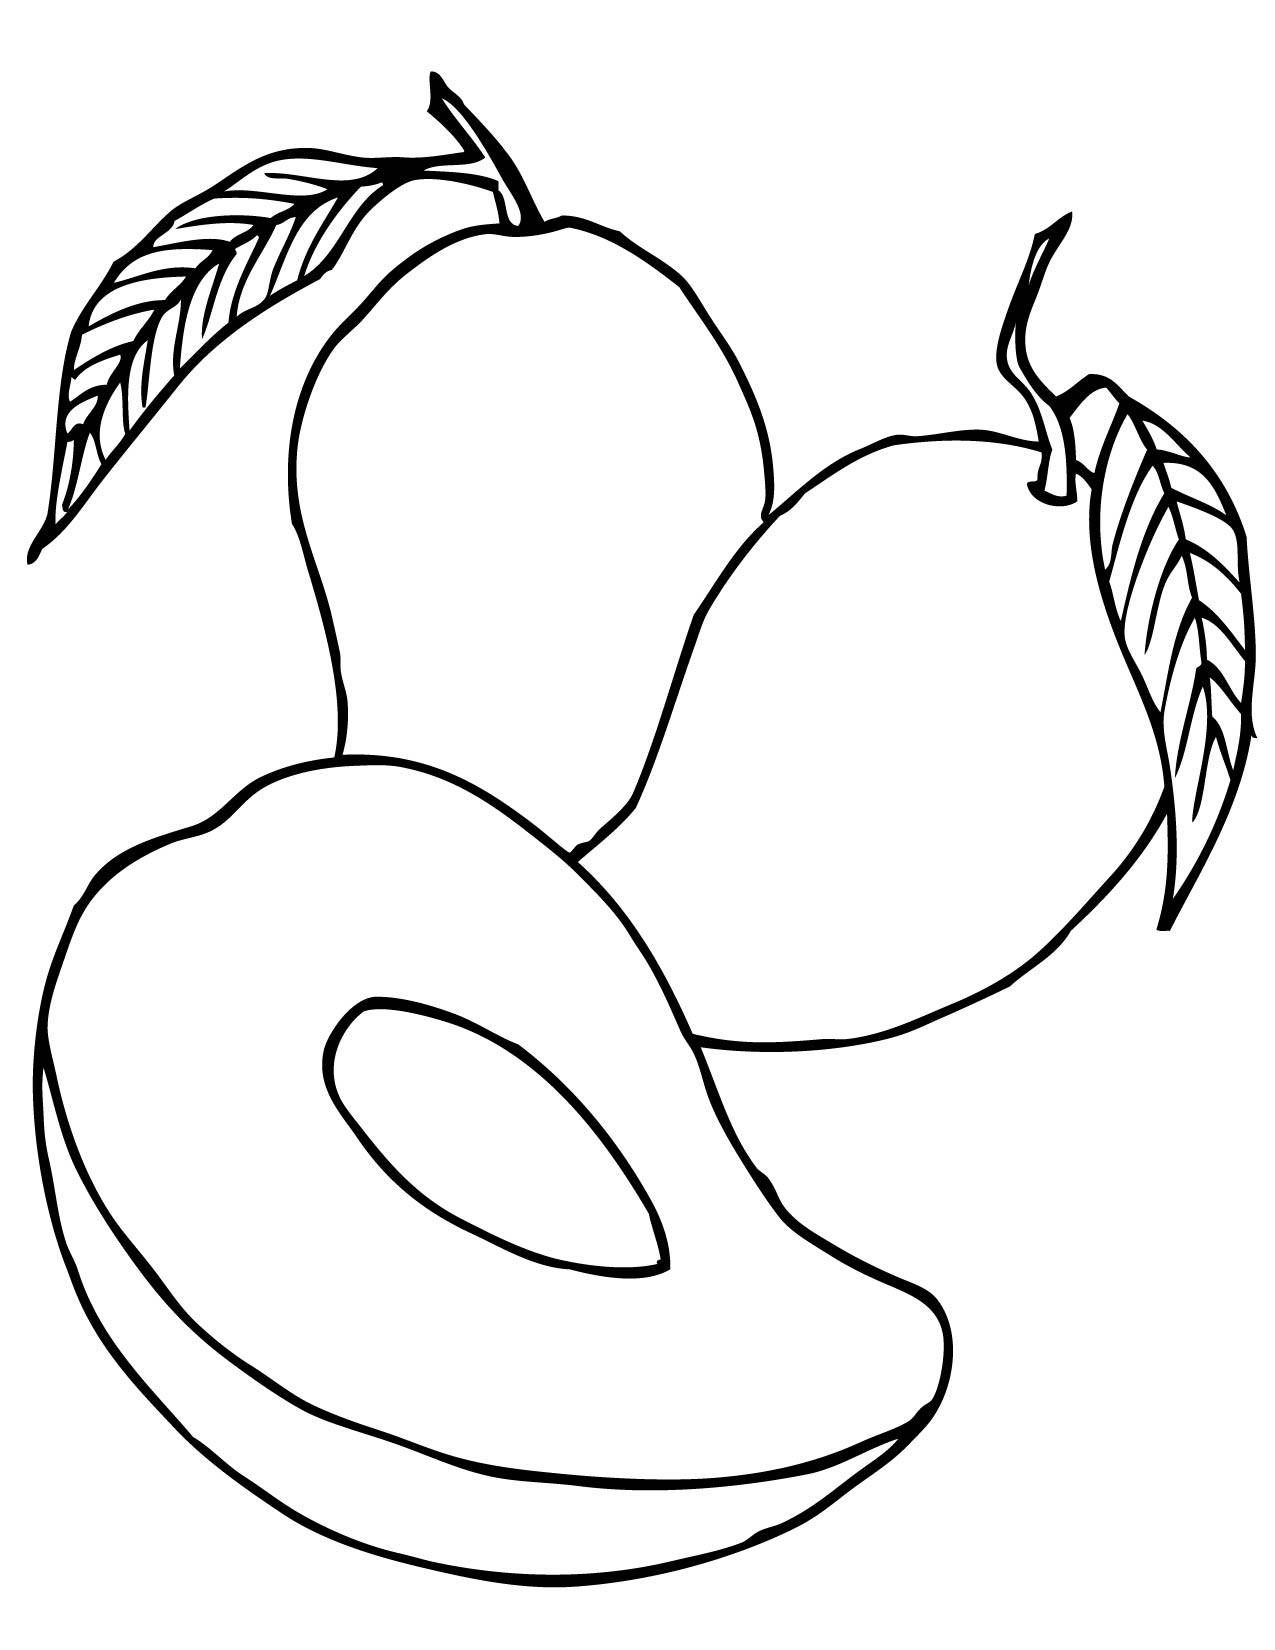 coloring mango clipart mango clipart coloring pages and other free printable coloring mango clipart